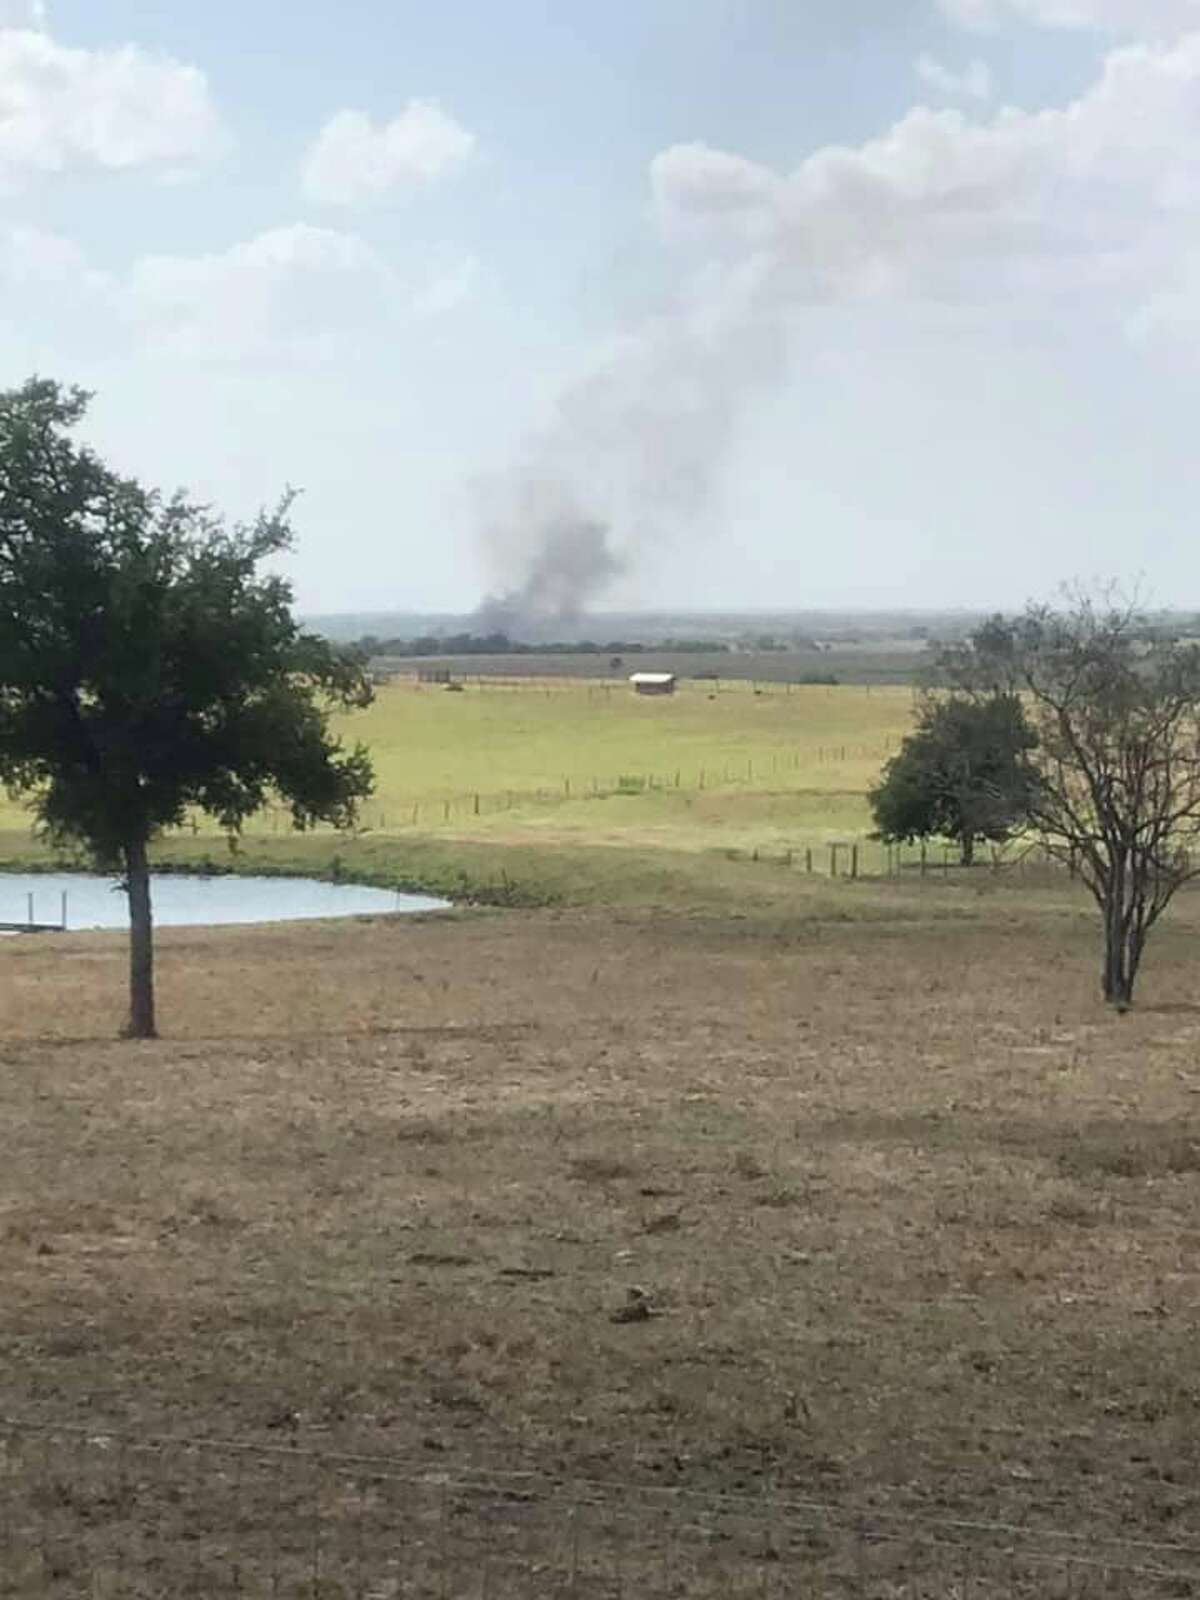 York Creek fire officials responding to a 100-acre wildfire in Kingsbury on Aug. 18 photograph a plume of smoke from the fire 25 miles away.